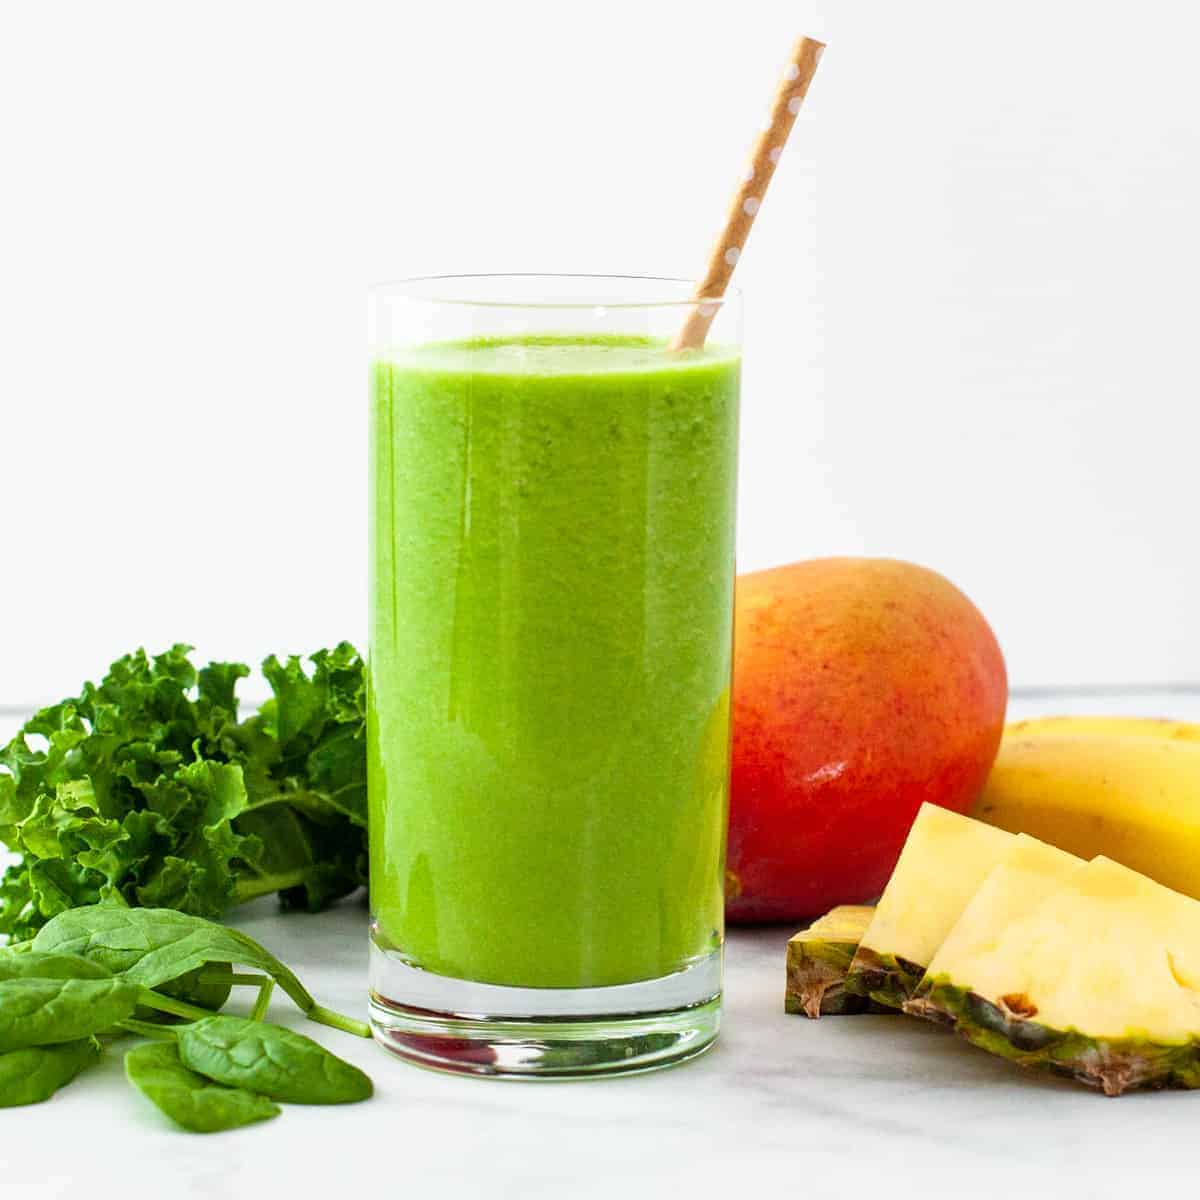 Tropical green smoothie in a glass, surrounded by fresh fruits and greens